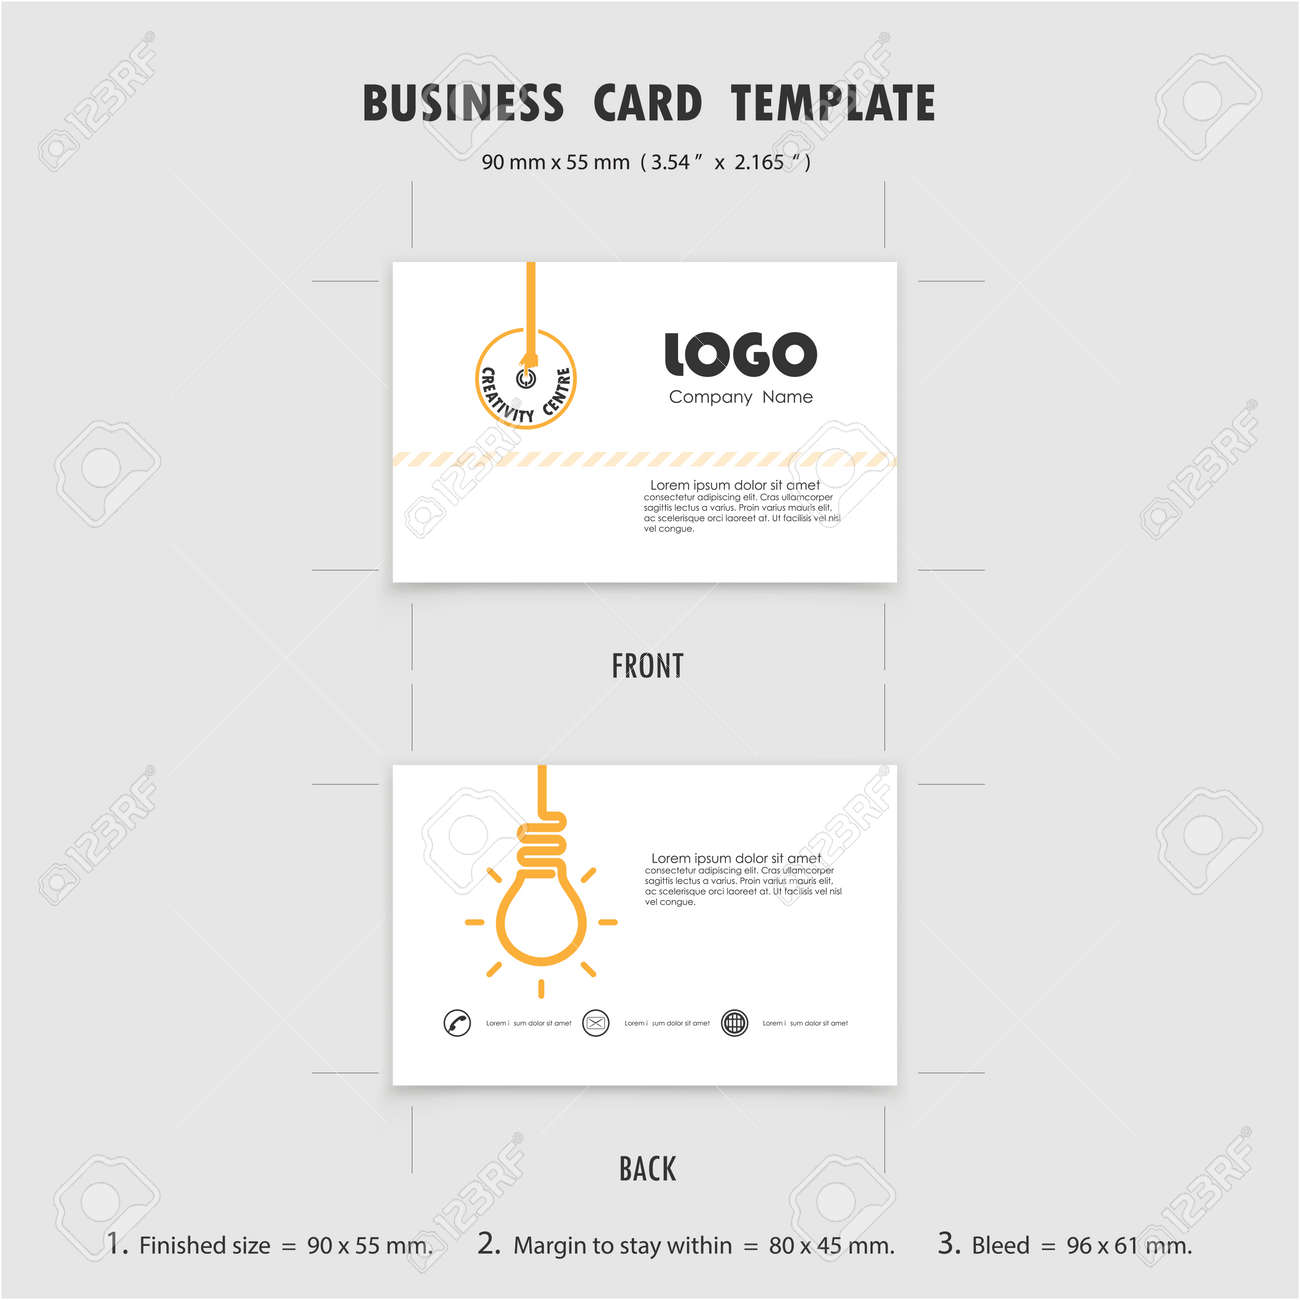 Modele De Conception Abstraite Cartes Visite Creatives Taille